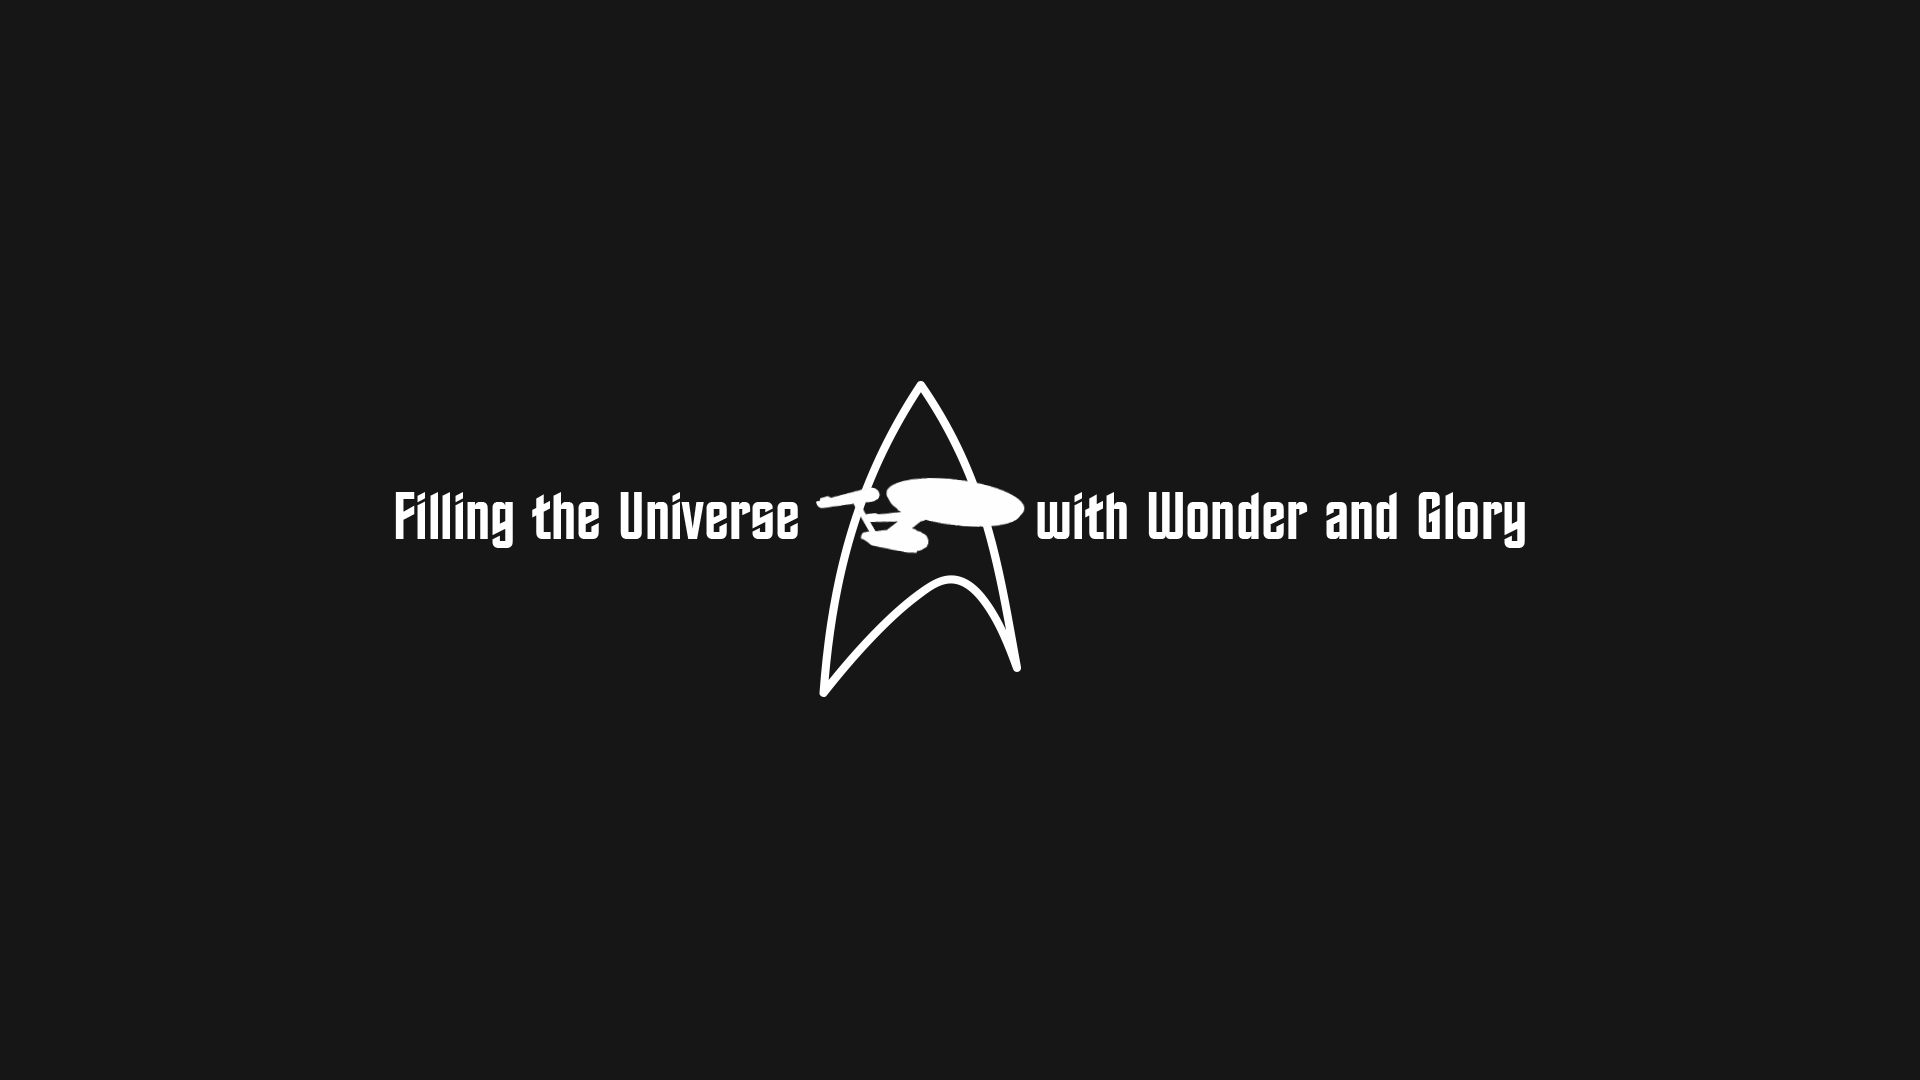 [1920x1080] Star Trek Minimalist Wallpaper | Reddit HD Wallpapers | Minimalist wallpaper, Star ...